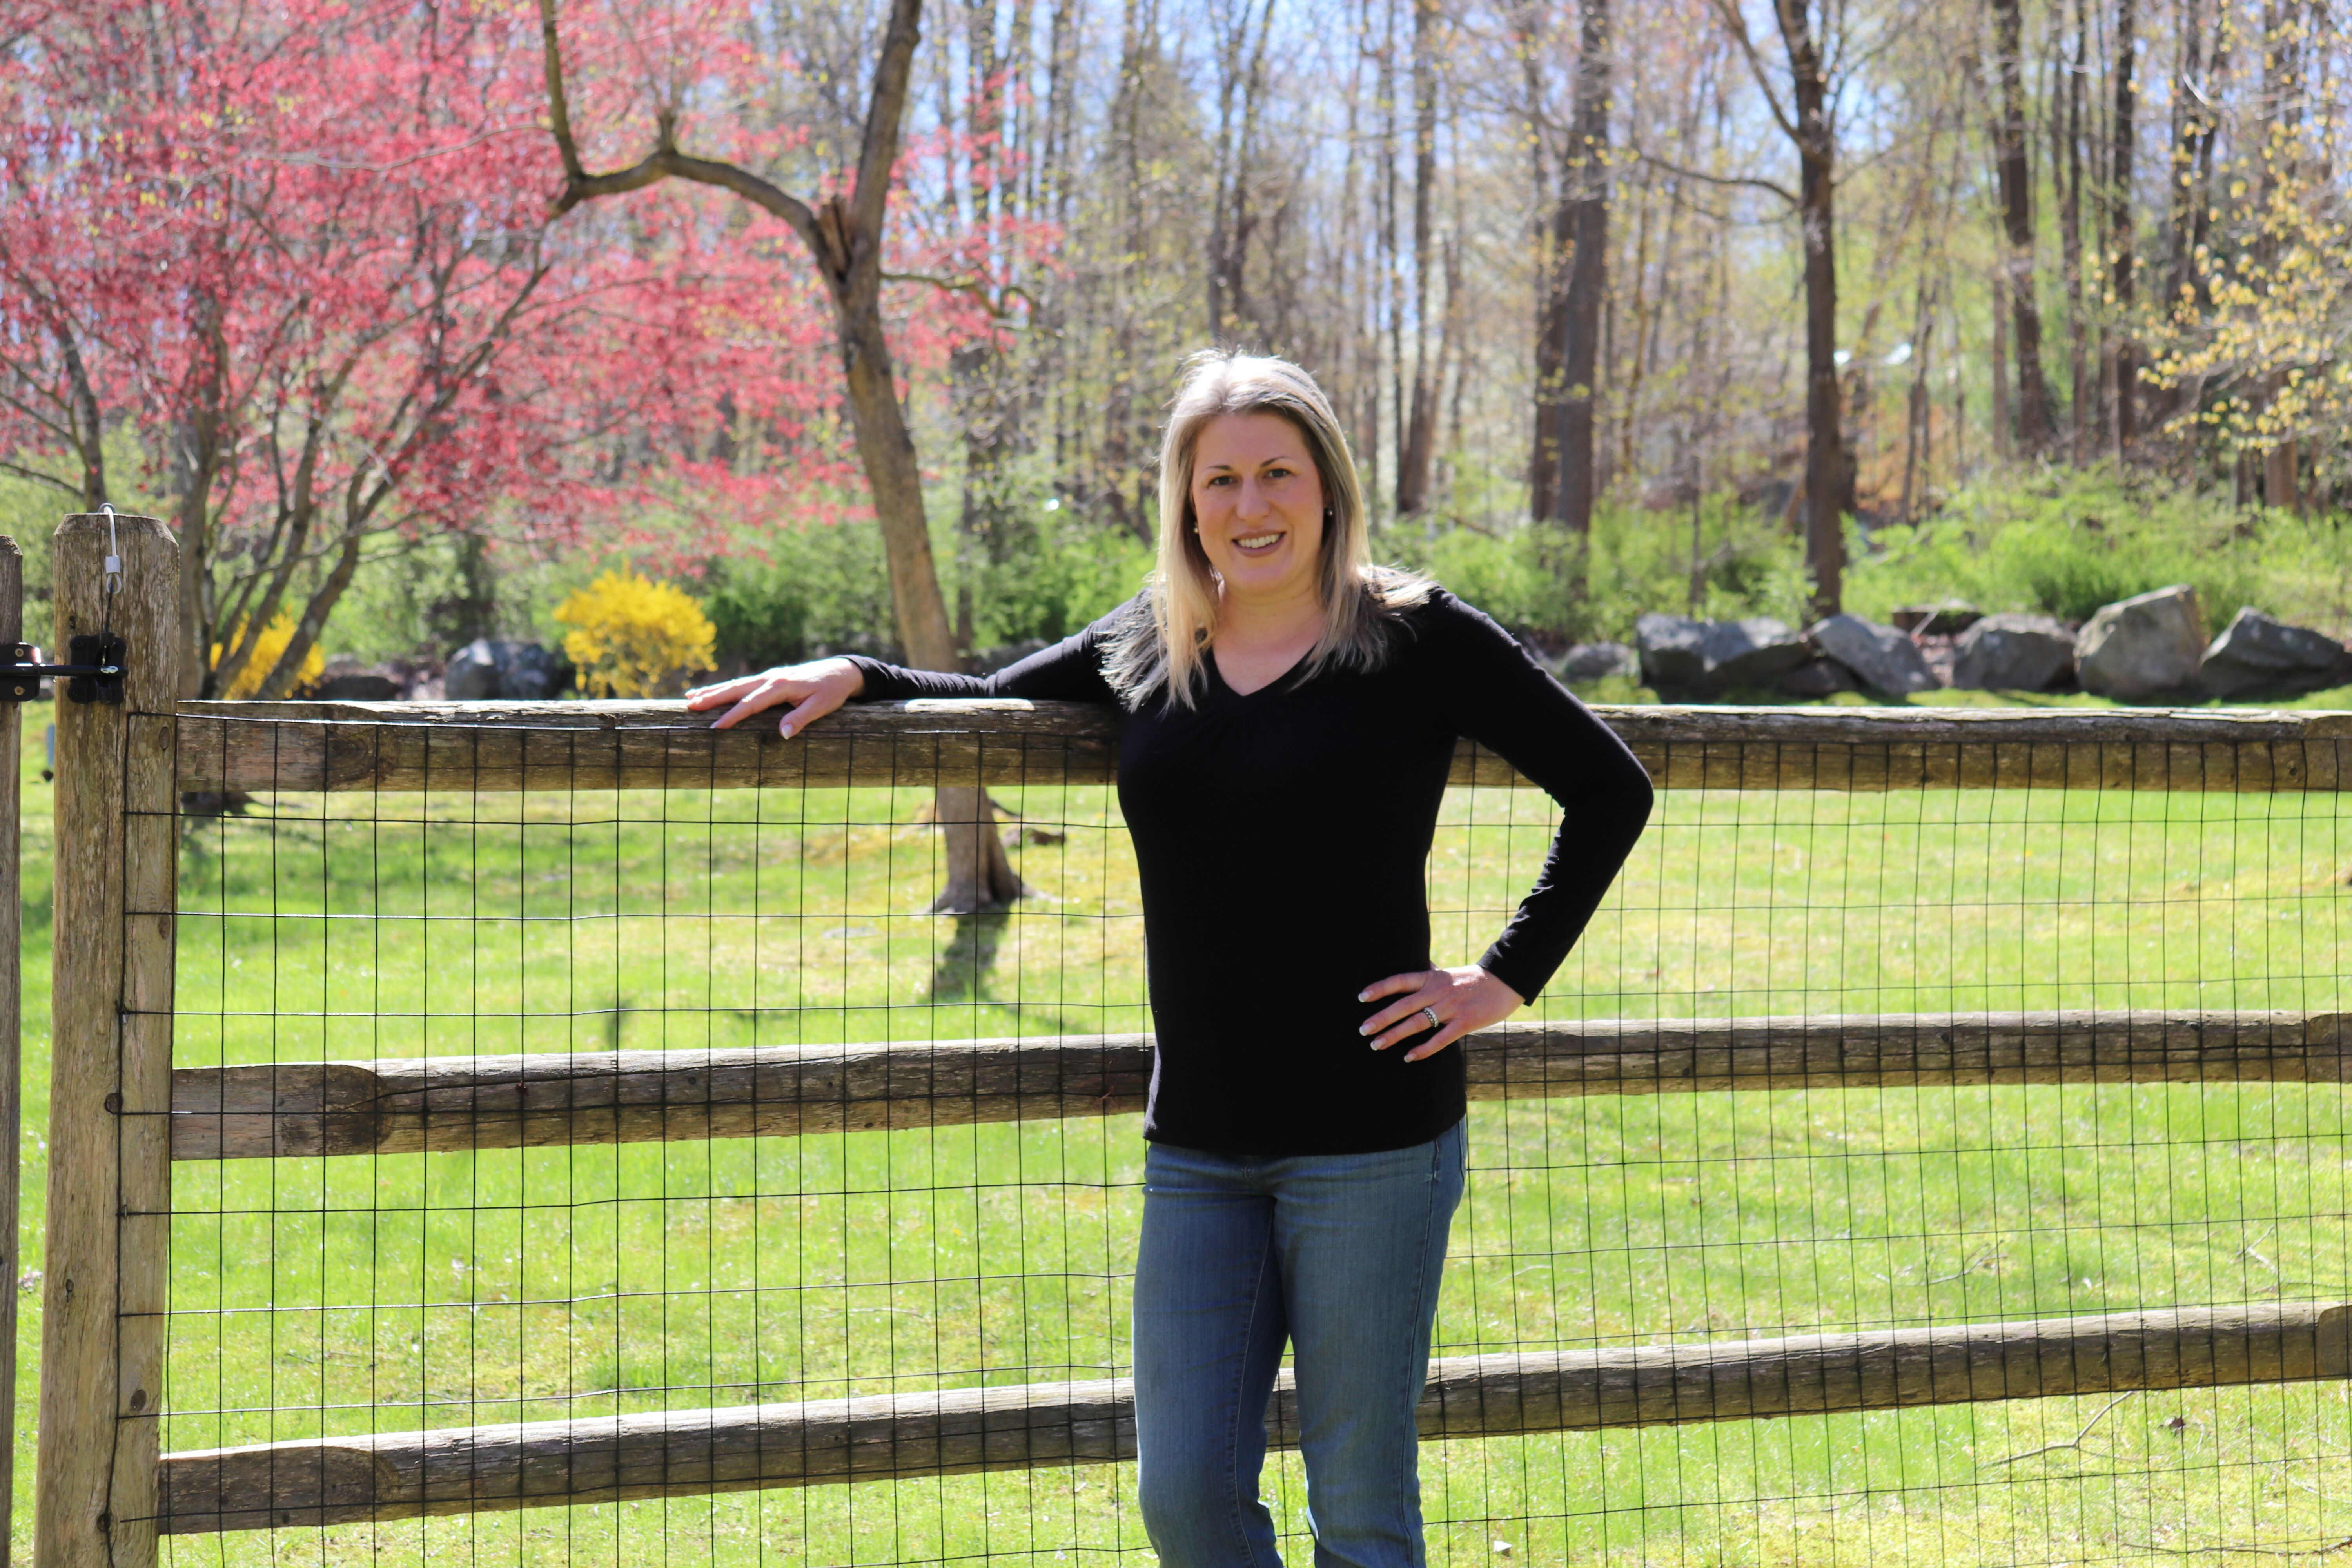 Blond-haired woman in her 40s who had a mommy makeover, dressed in a black long sleeve shirt and blue jeans, leaning on a wooden fence.